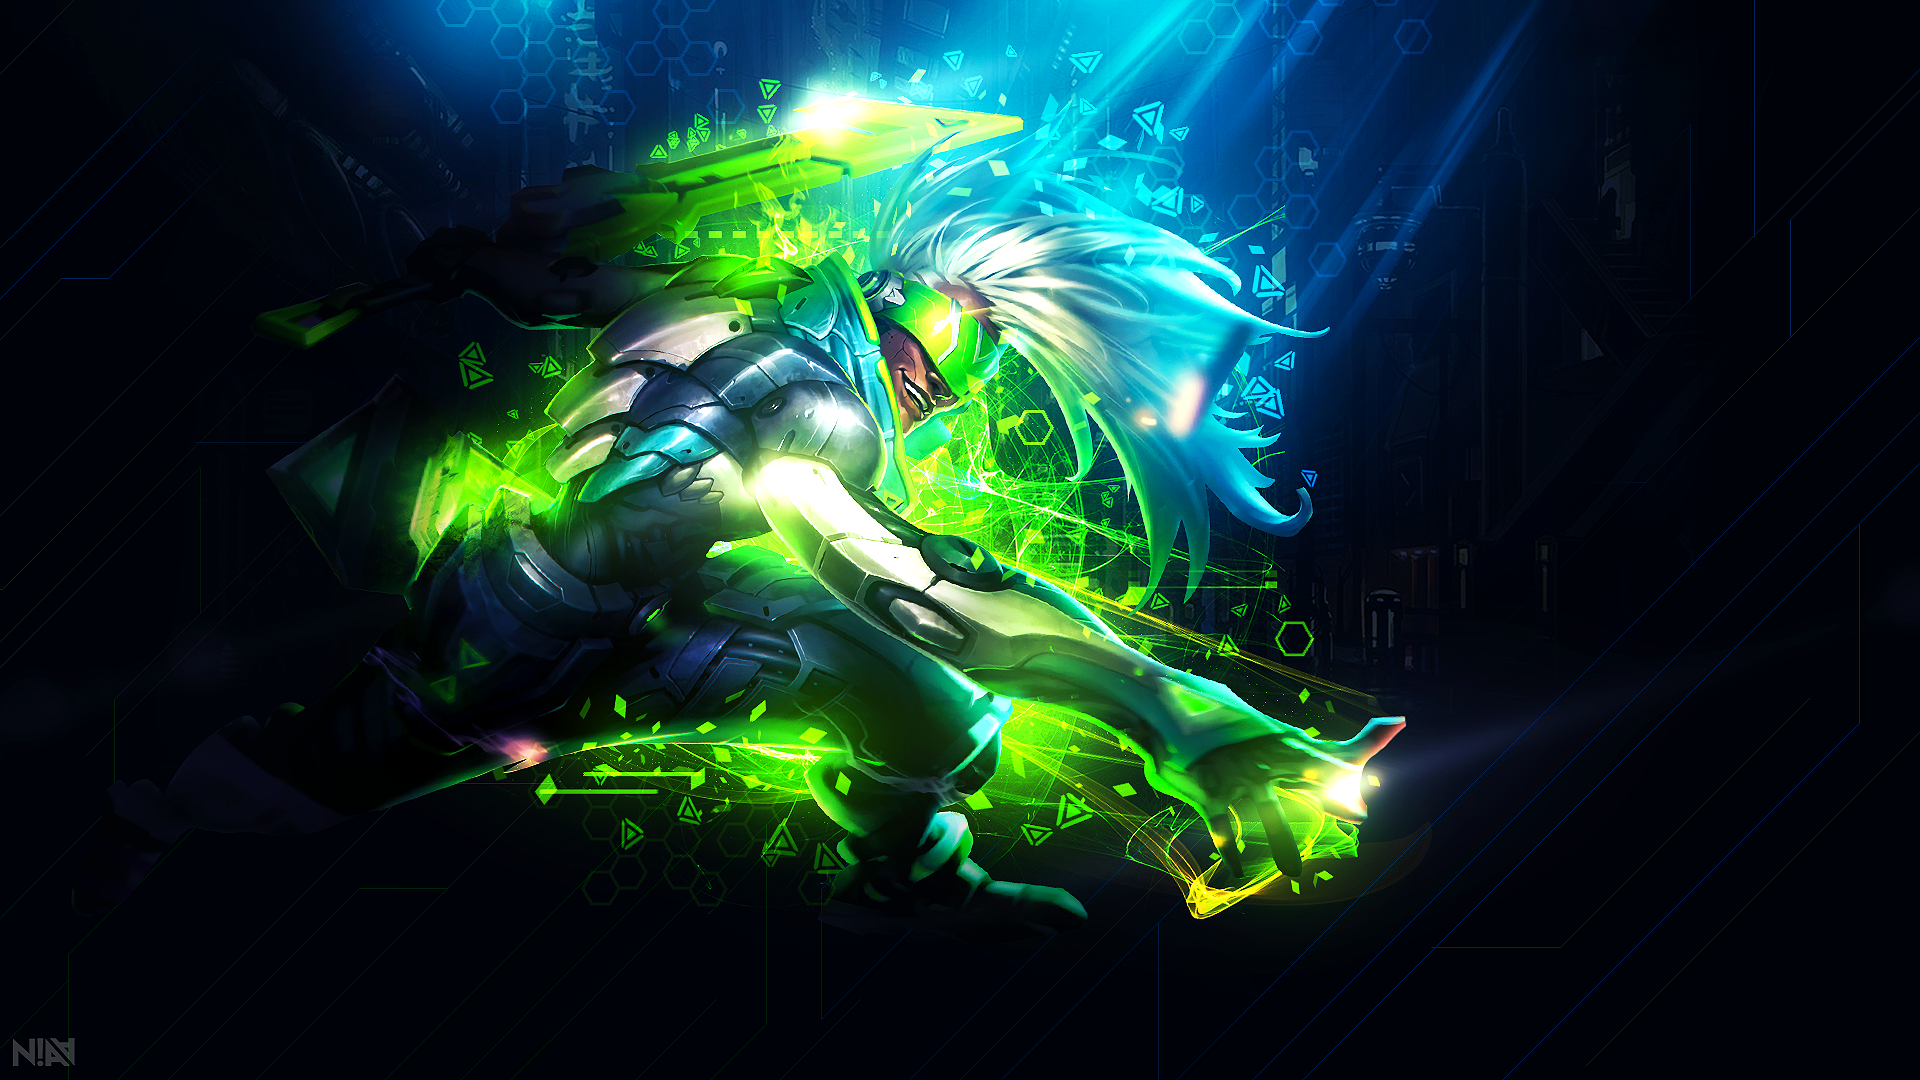 Project Ekko Wallpaper 1920x1080 Disruption By Aliceemad